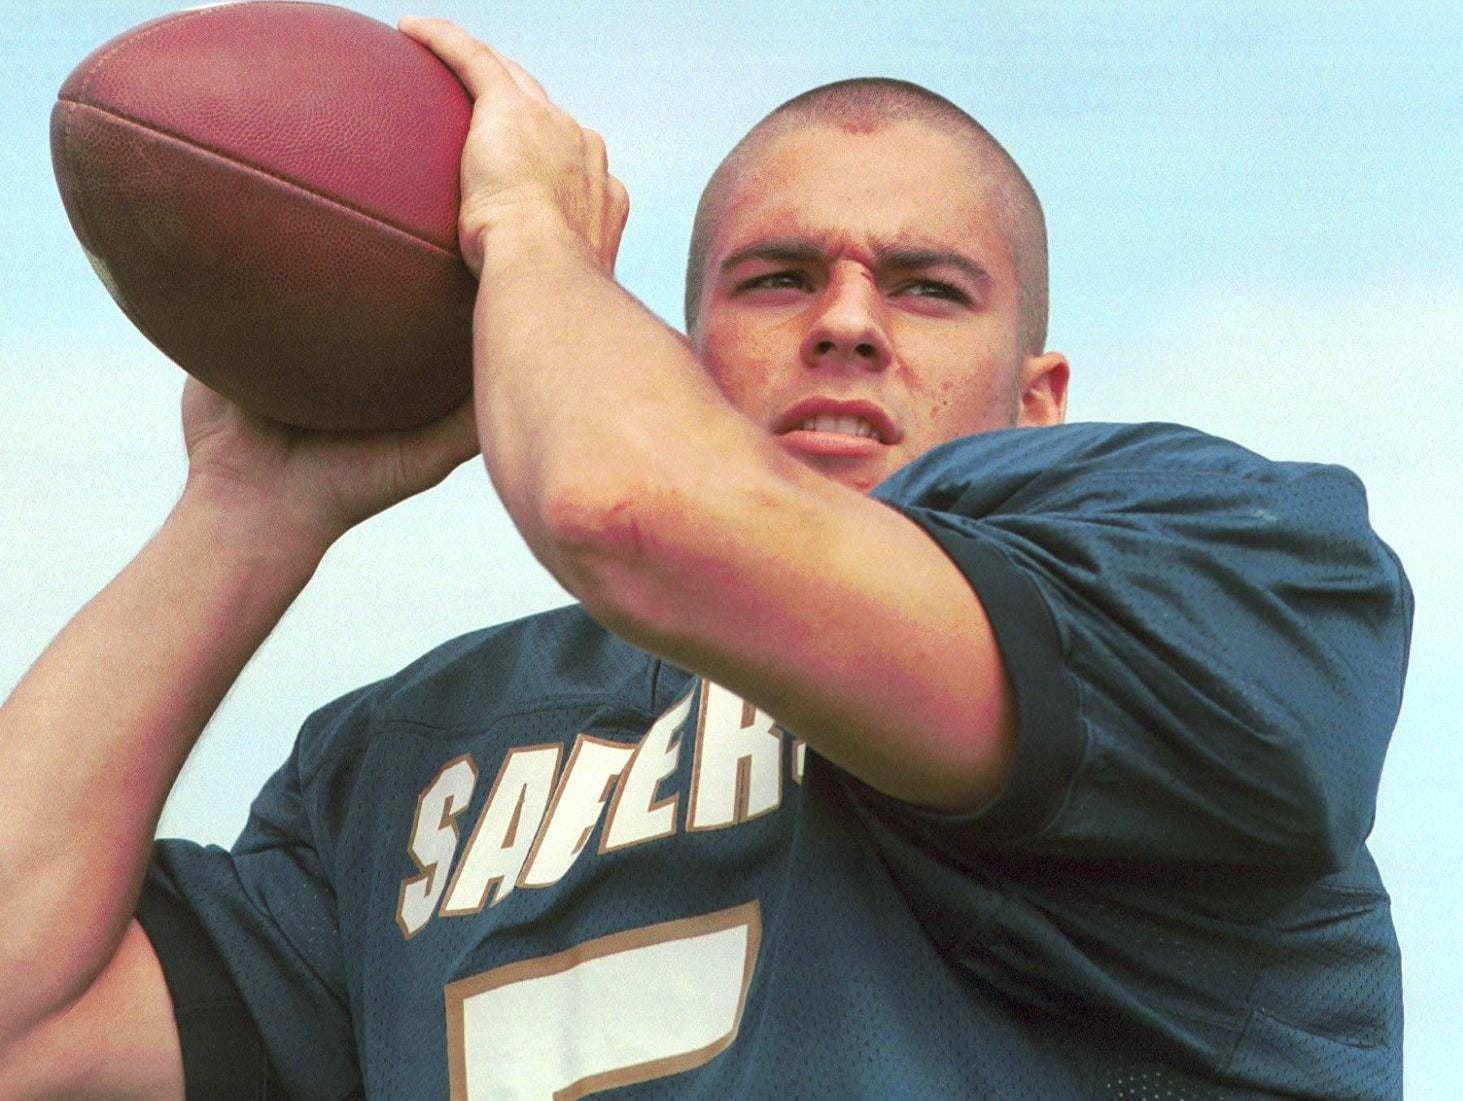 From 1998: Susquehanna Valley's Bill O'Neill readies to throw a ball during a recent practice.